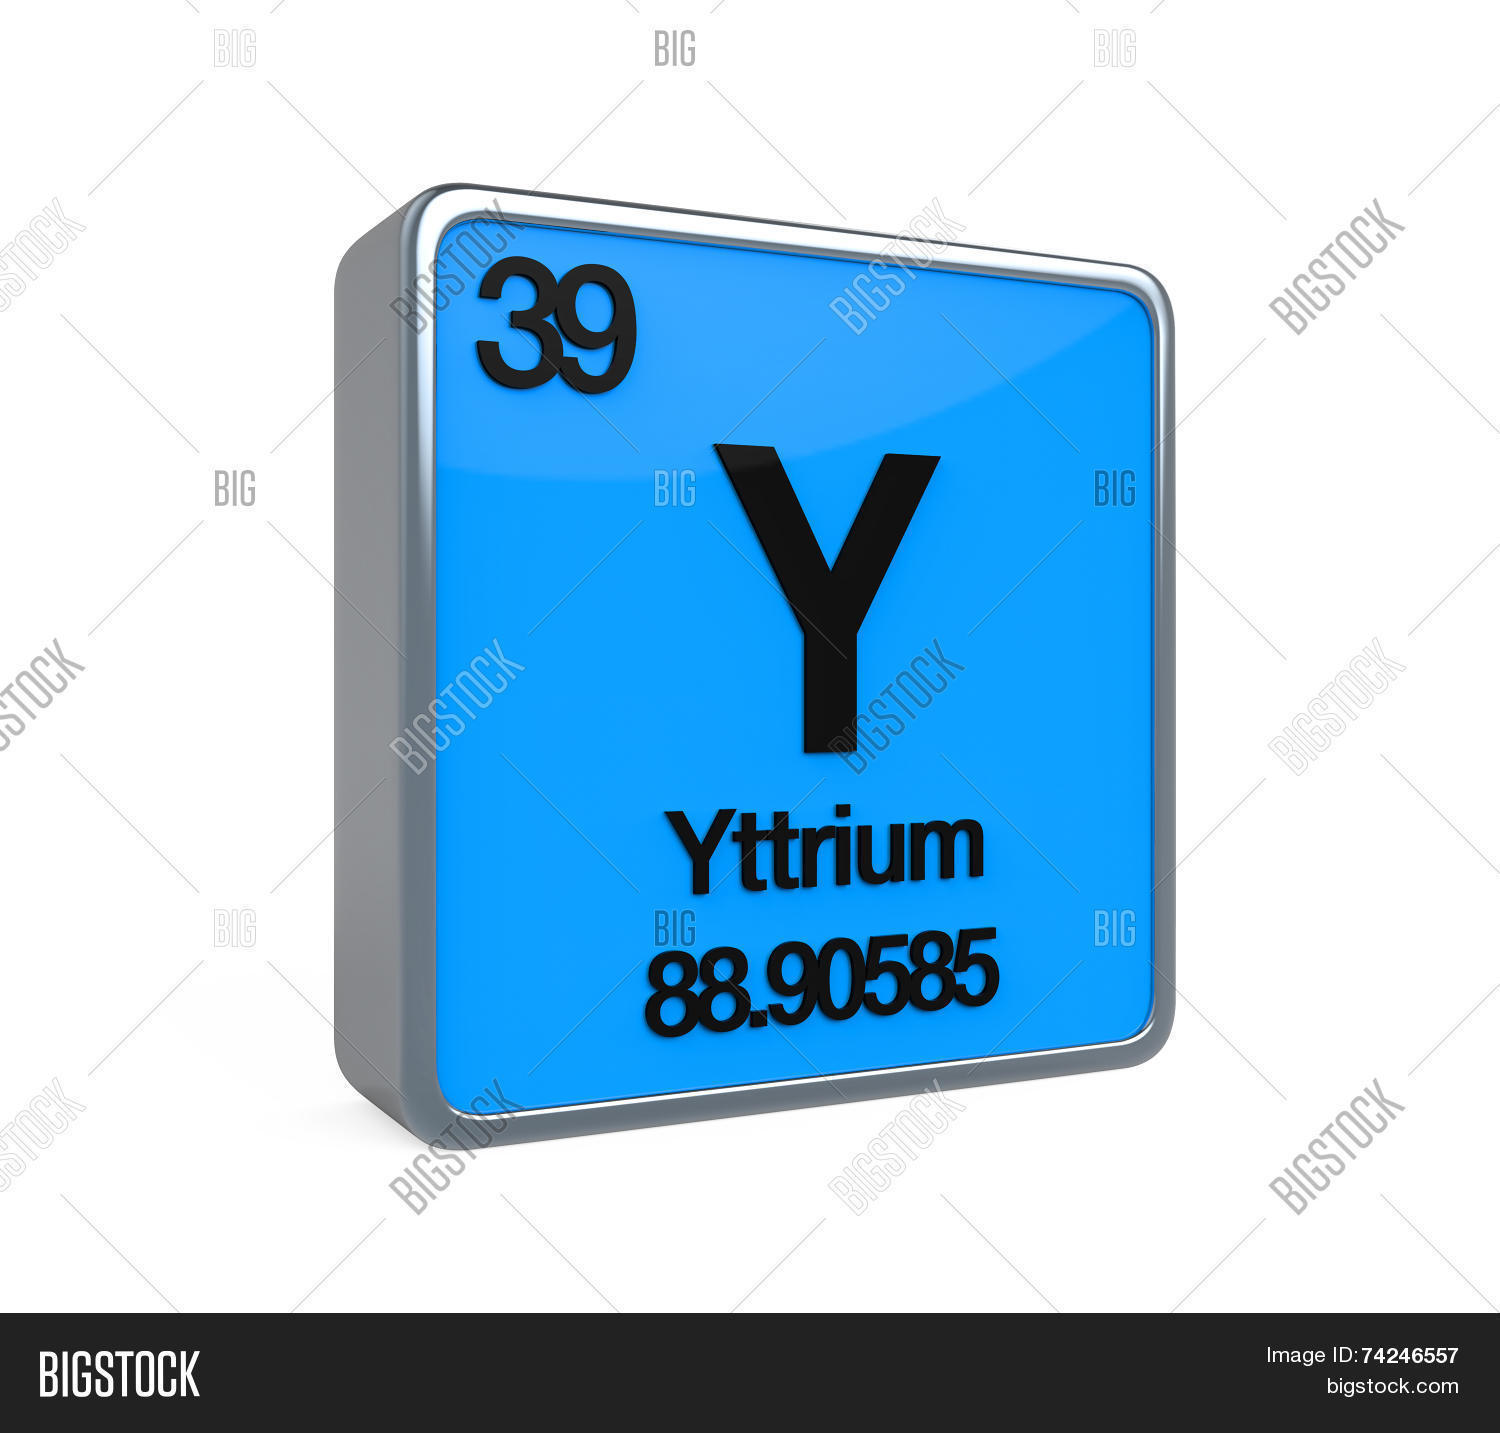 Yttrium element periodic table image photo bigstock yttrium element periodic table urtaz Images